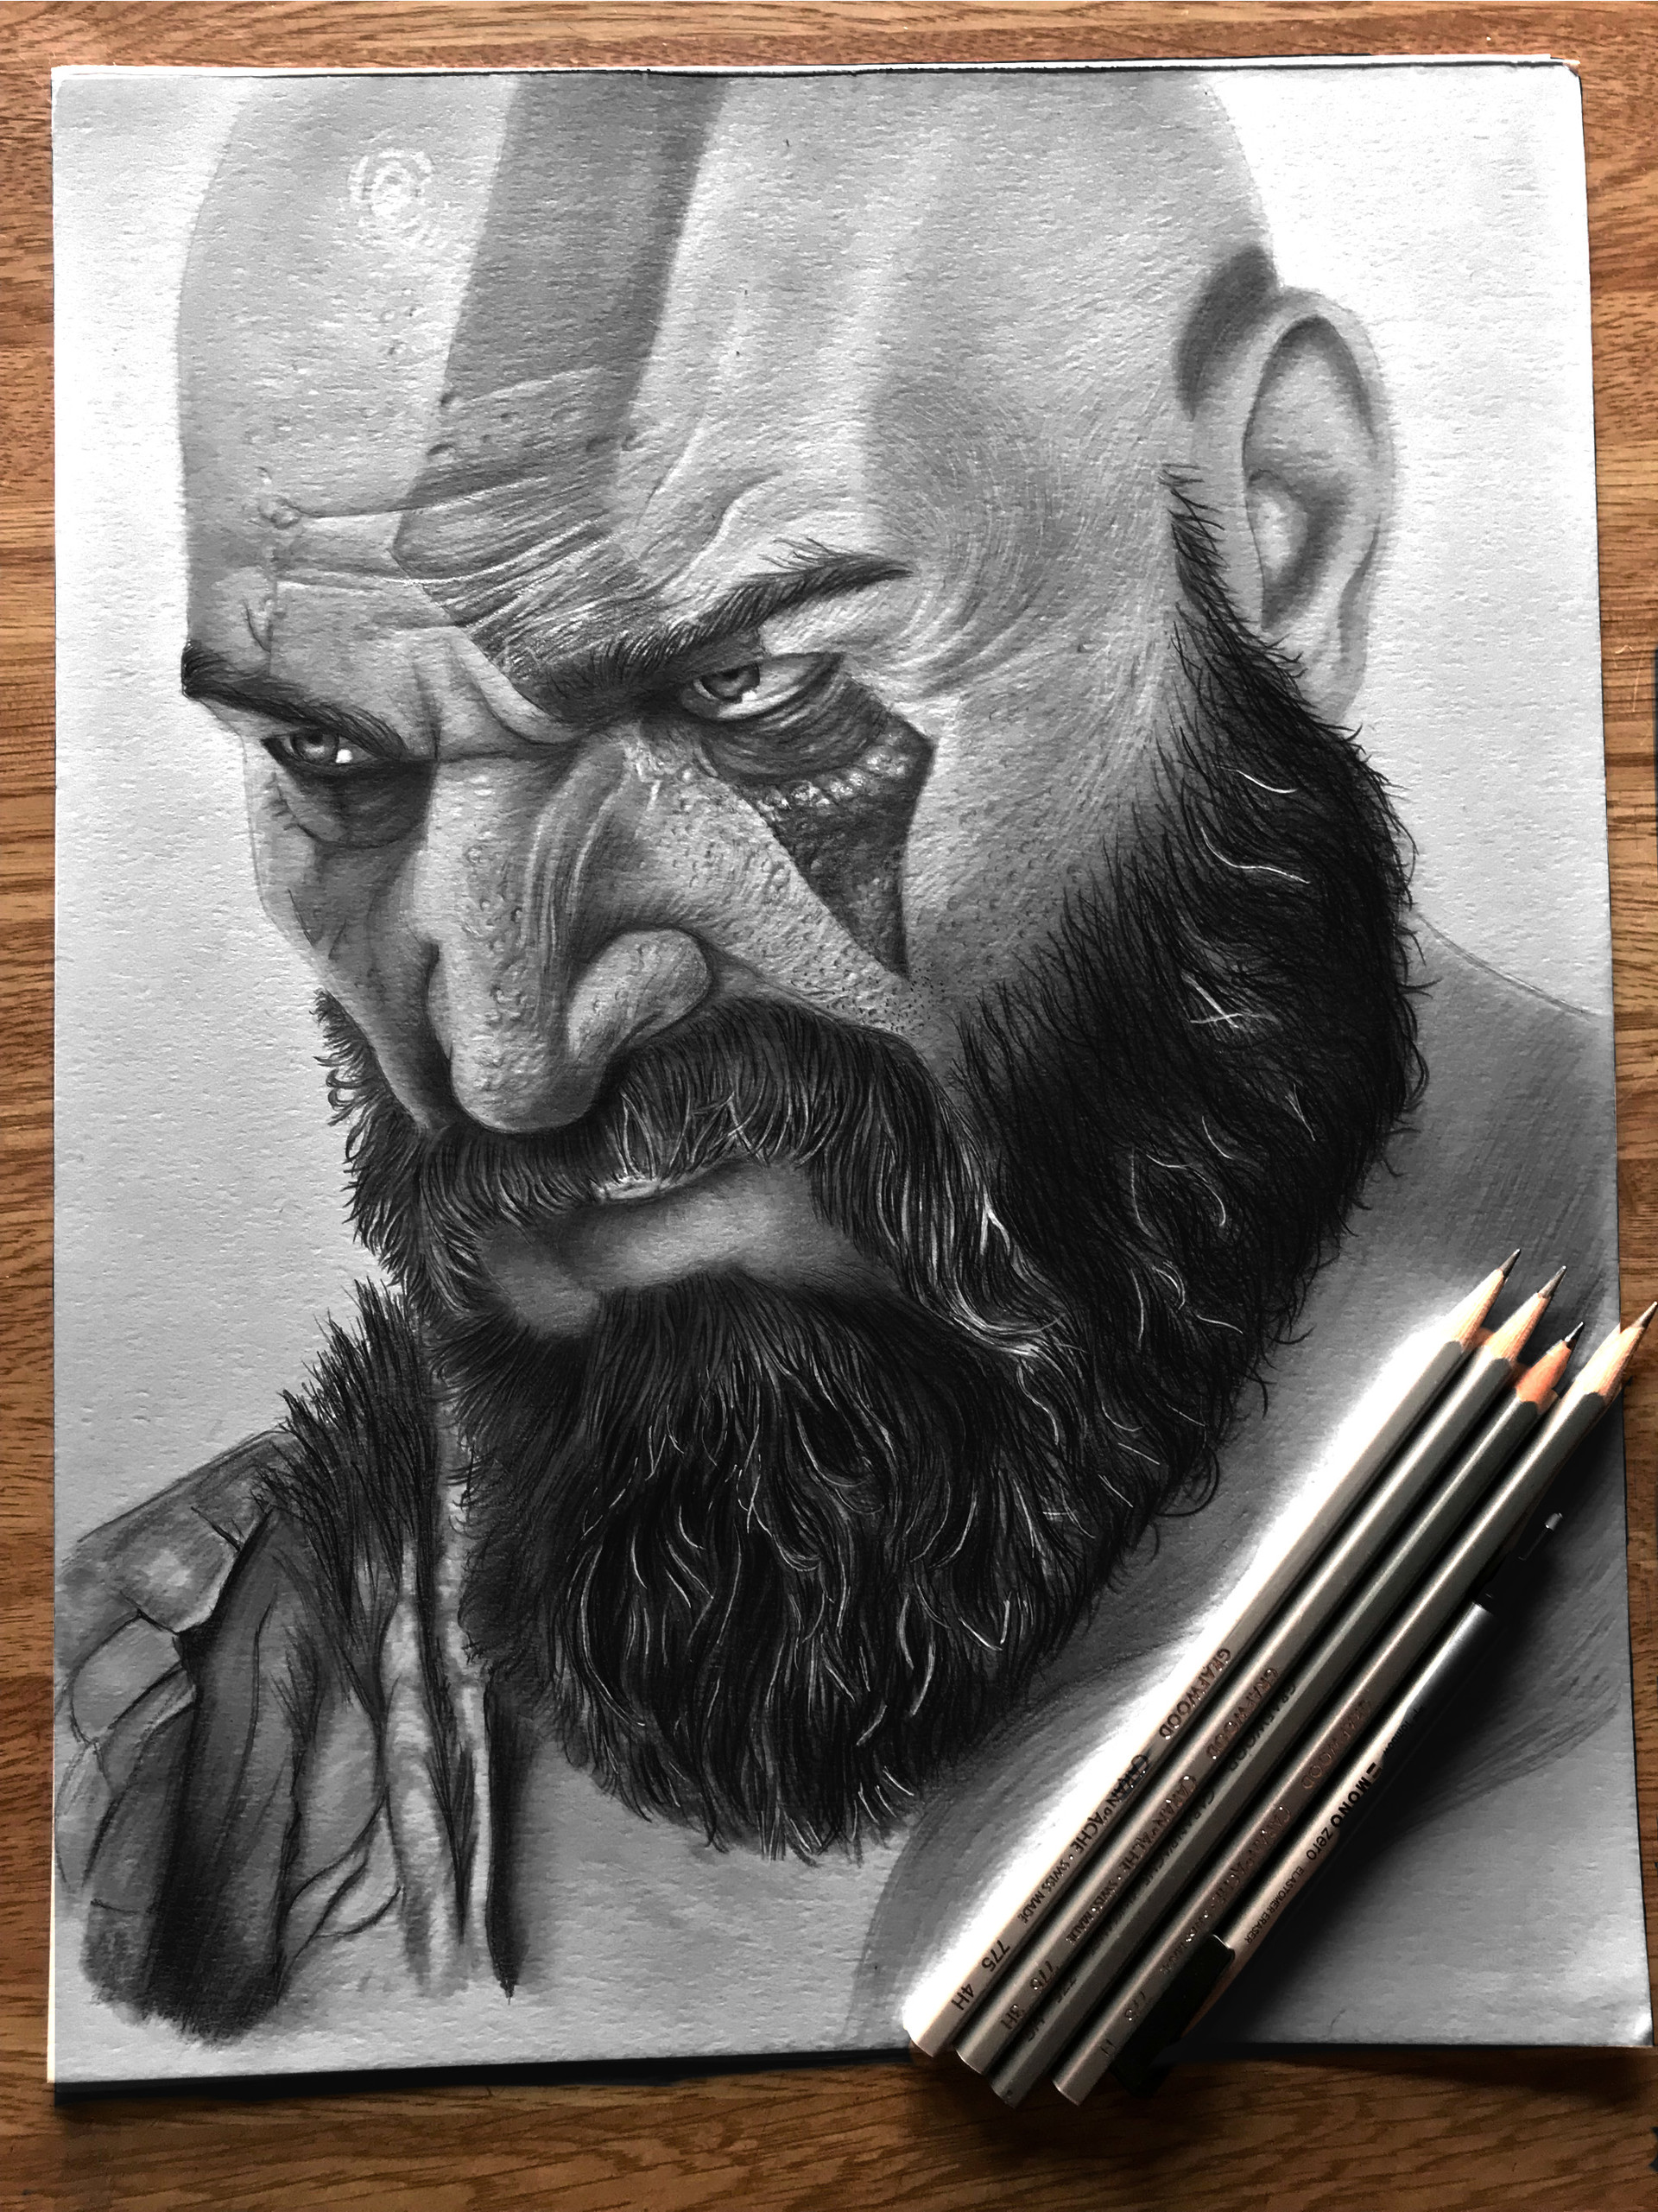 Pencil art of kratos from the game god of war